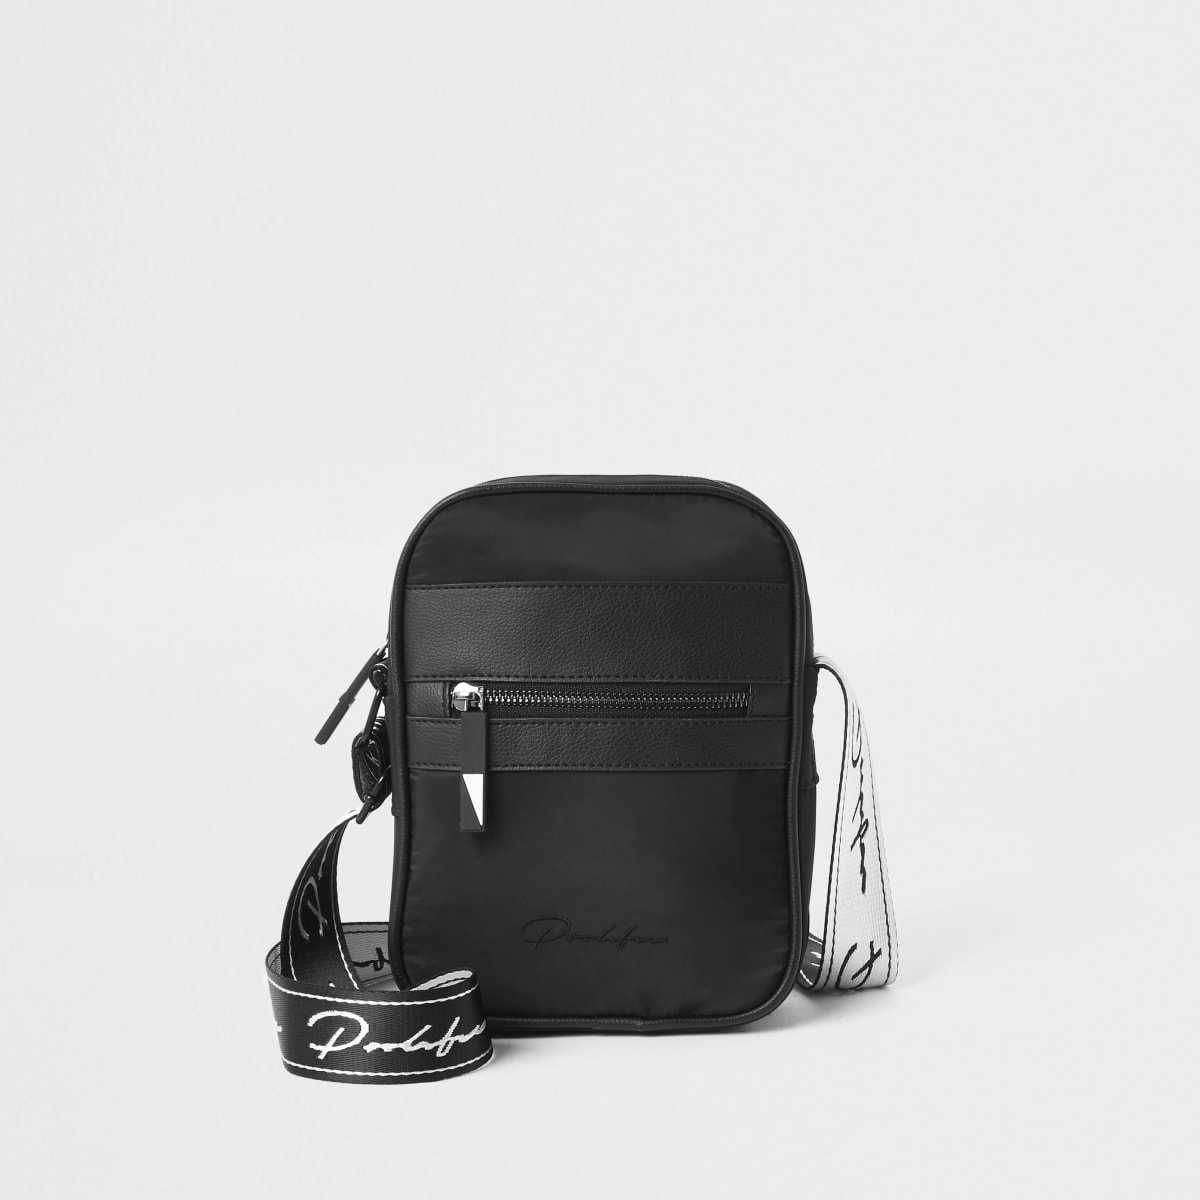 Black Prolific cross body flight bag